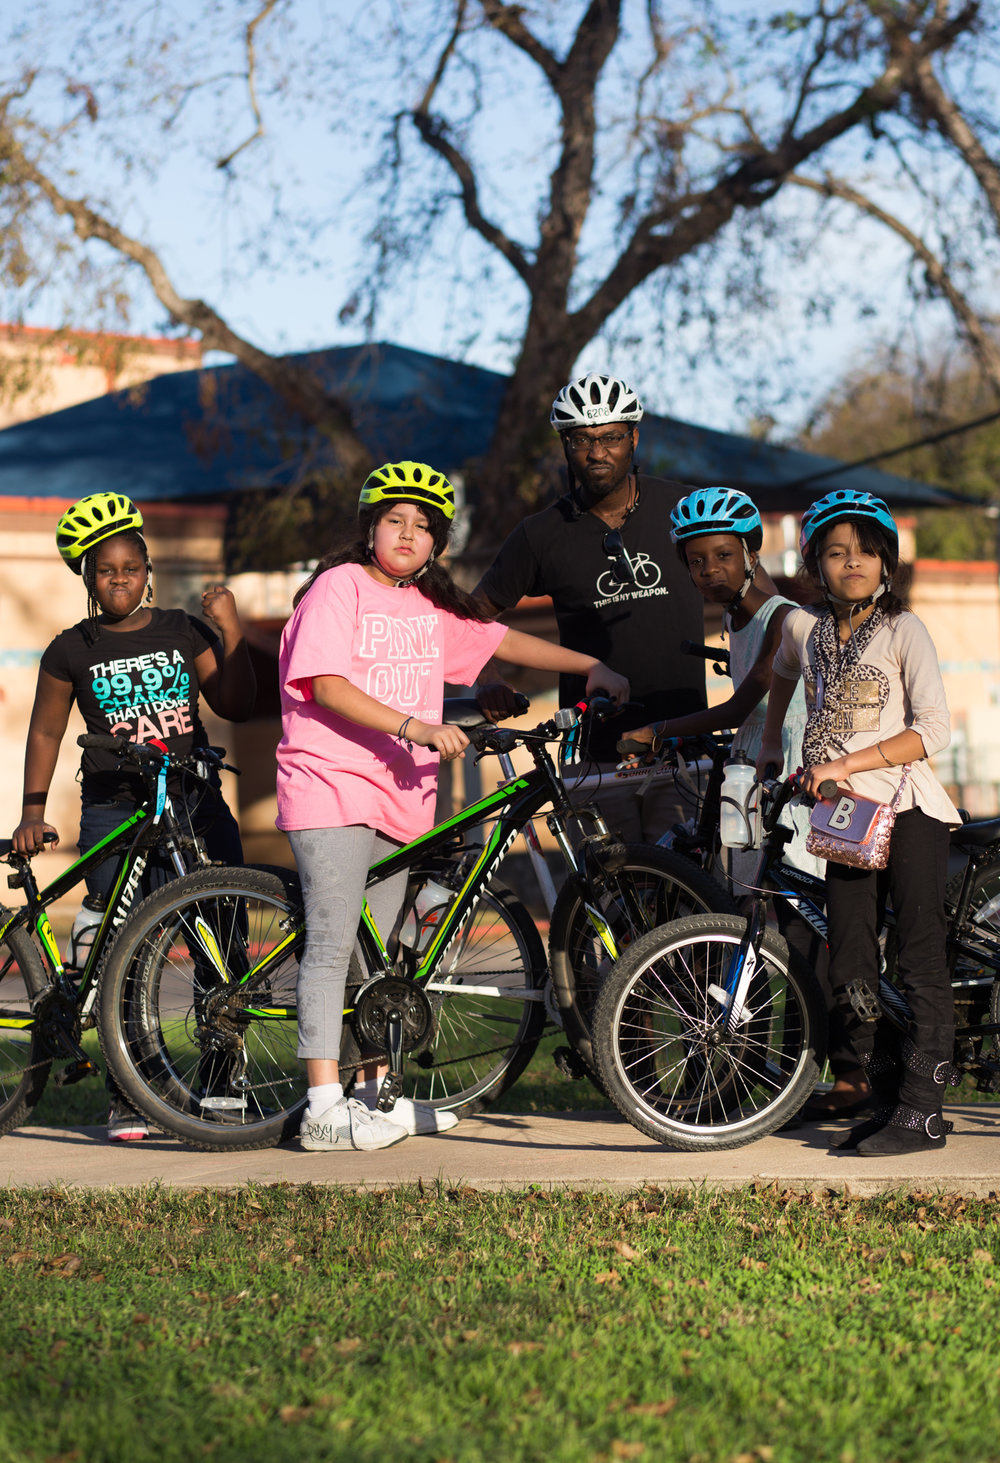 Girmawi James works with the Ghisallo Foundation, teaching inner-city youth how to safely ride bikes around the city of Austin. He thinks the city needs to improve cycling education for cyclists and drivers so that both residents and tourists can get around safely on bikes. Metz Elementary School, November 28, 2016.